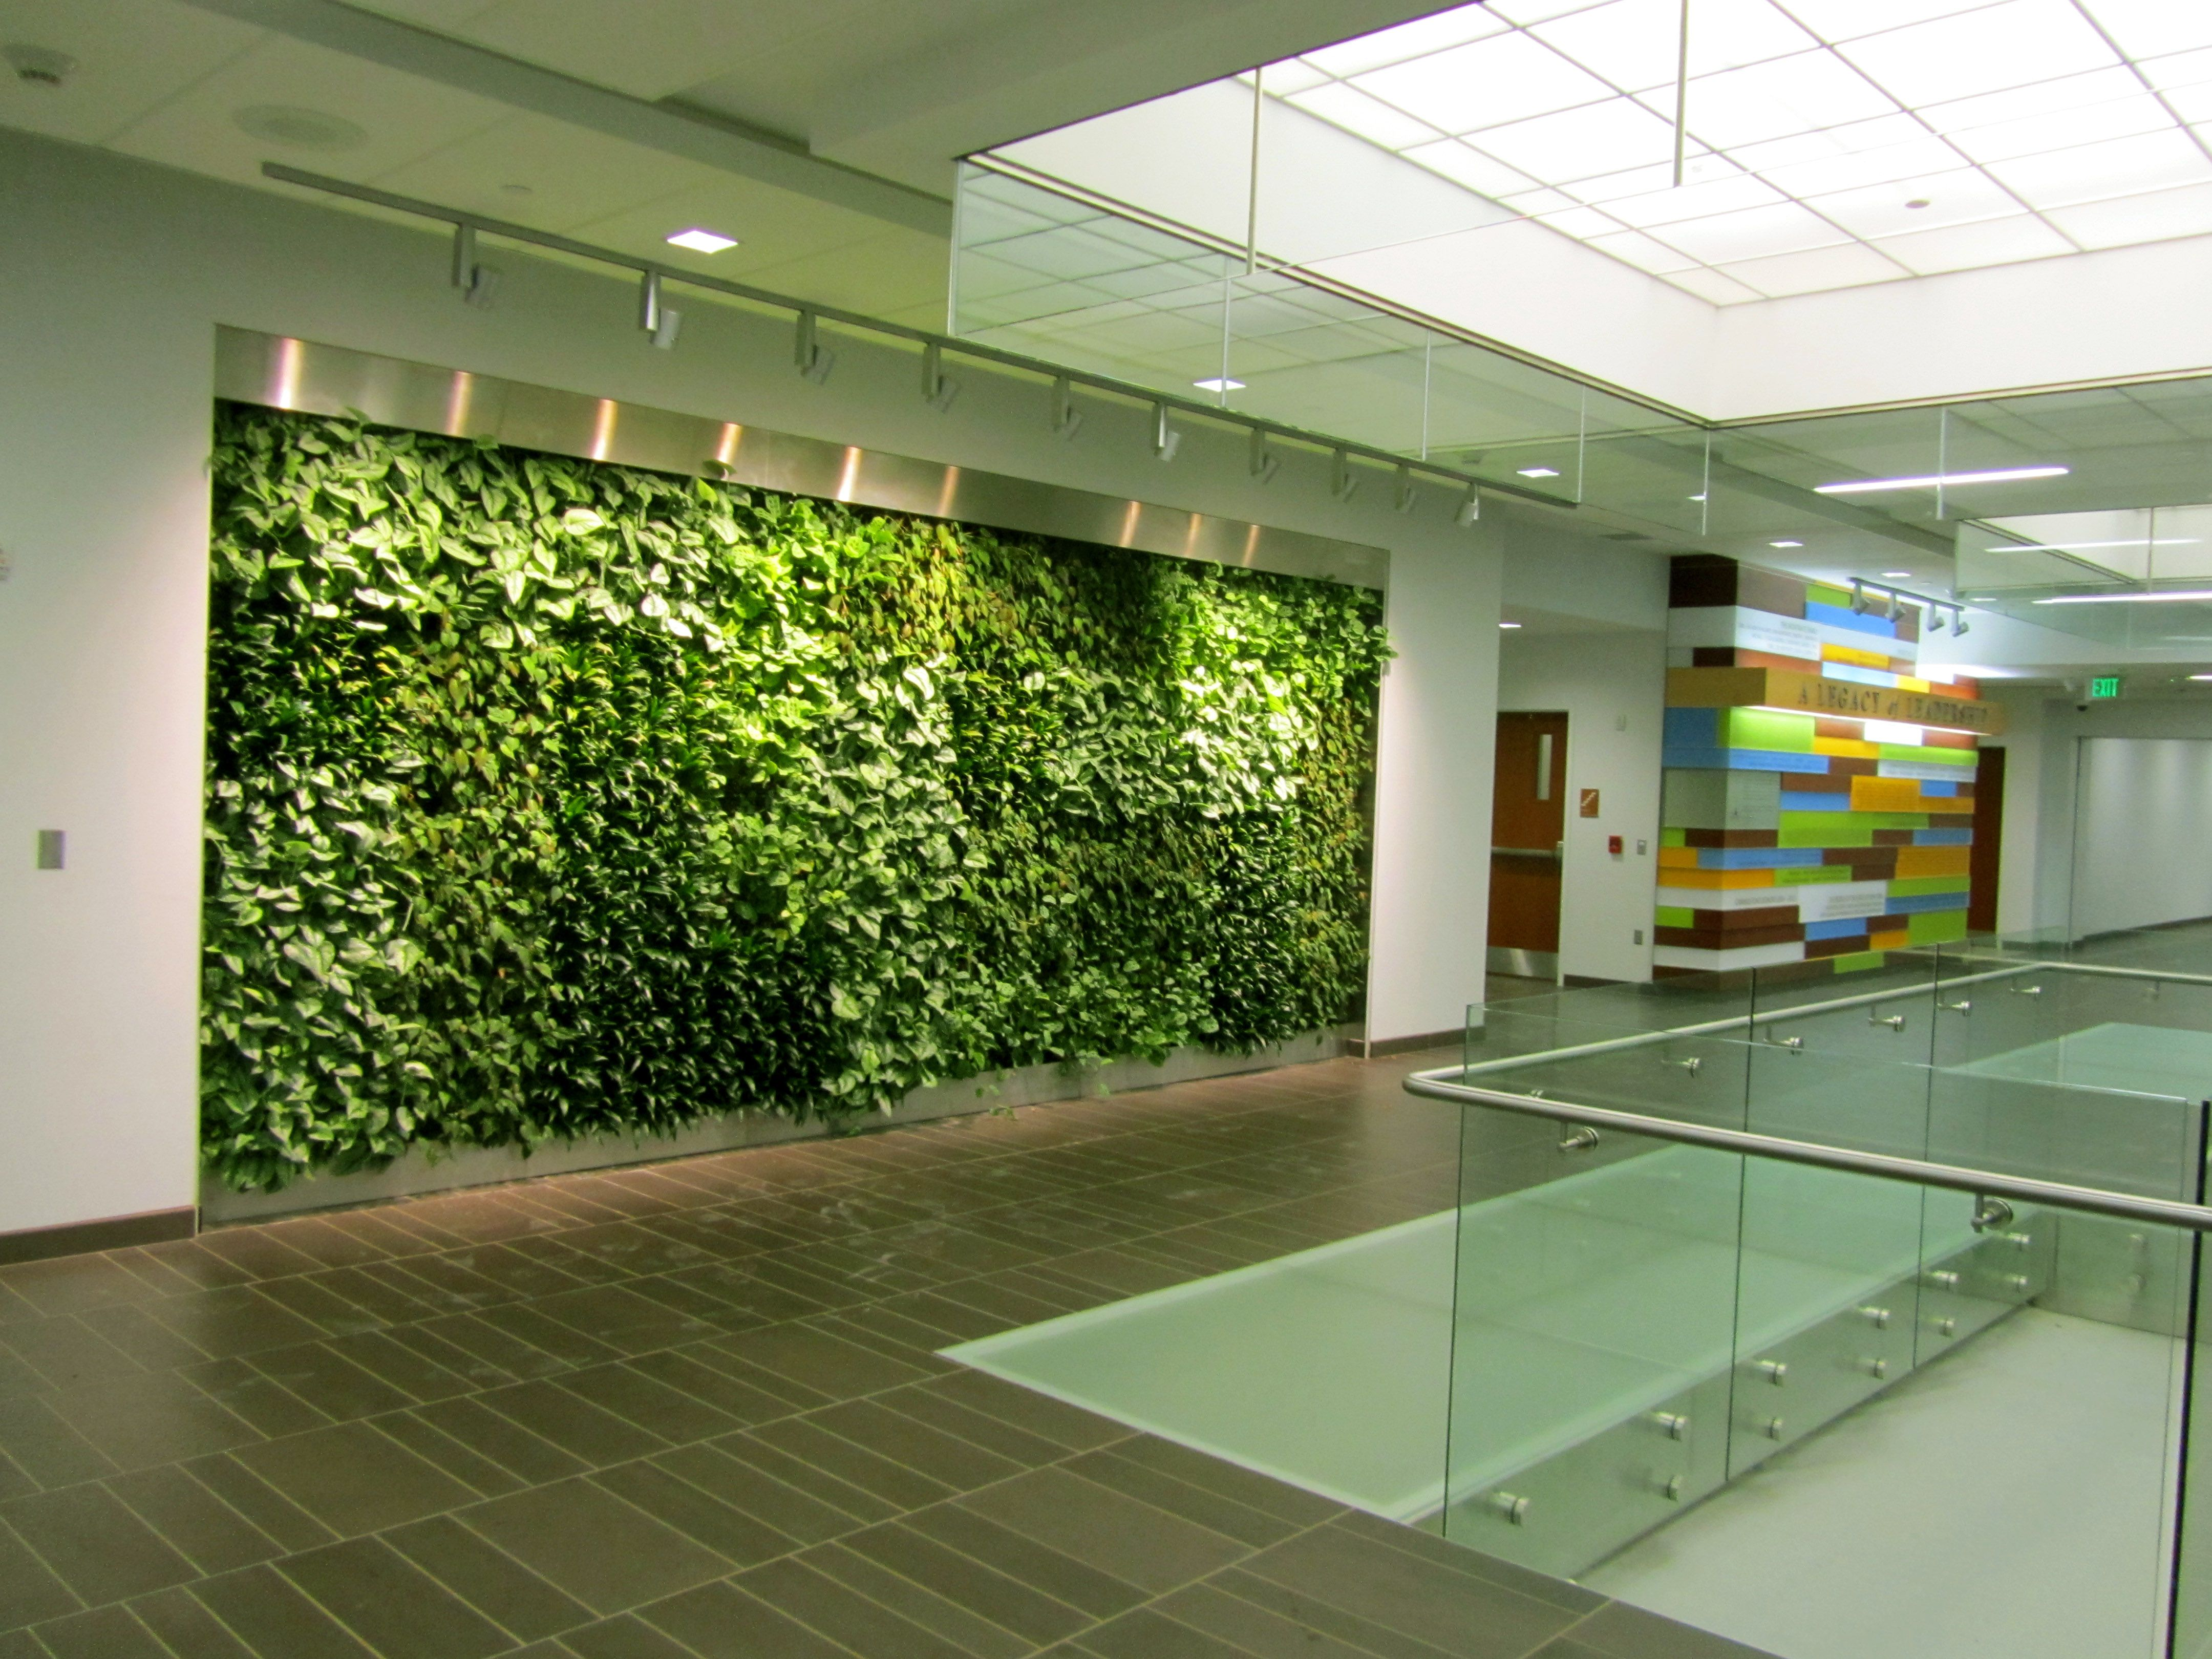 Living Green Wall to be installed | Morning Ag Clips